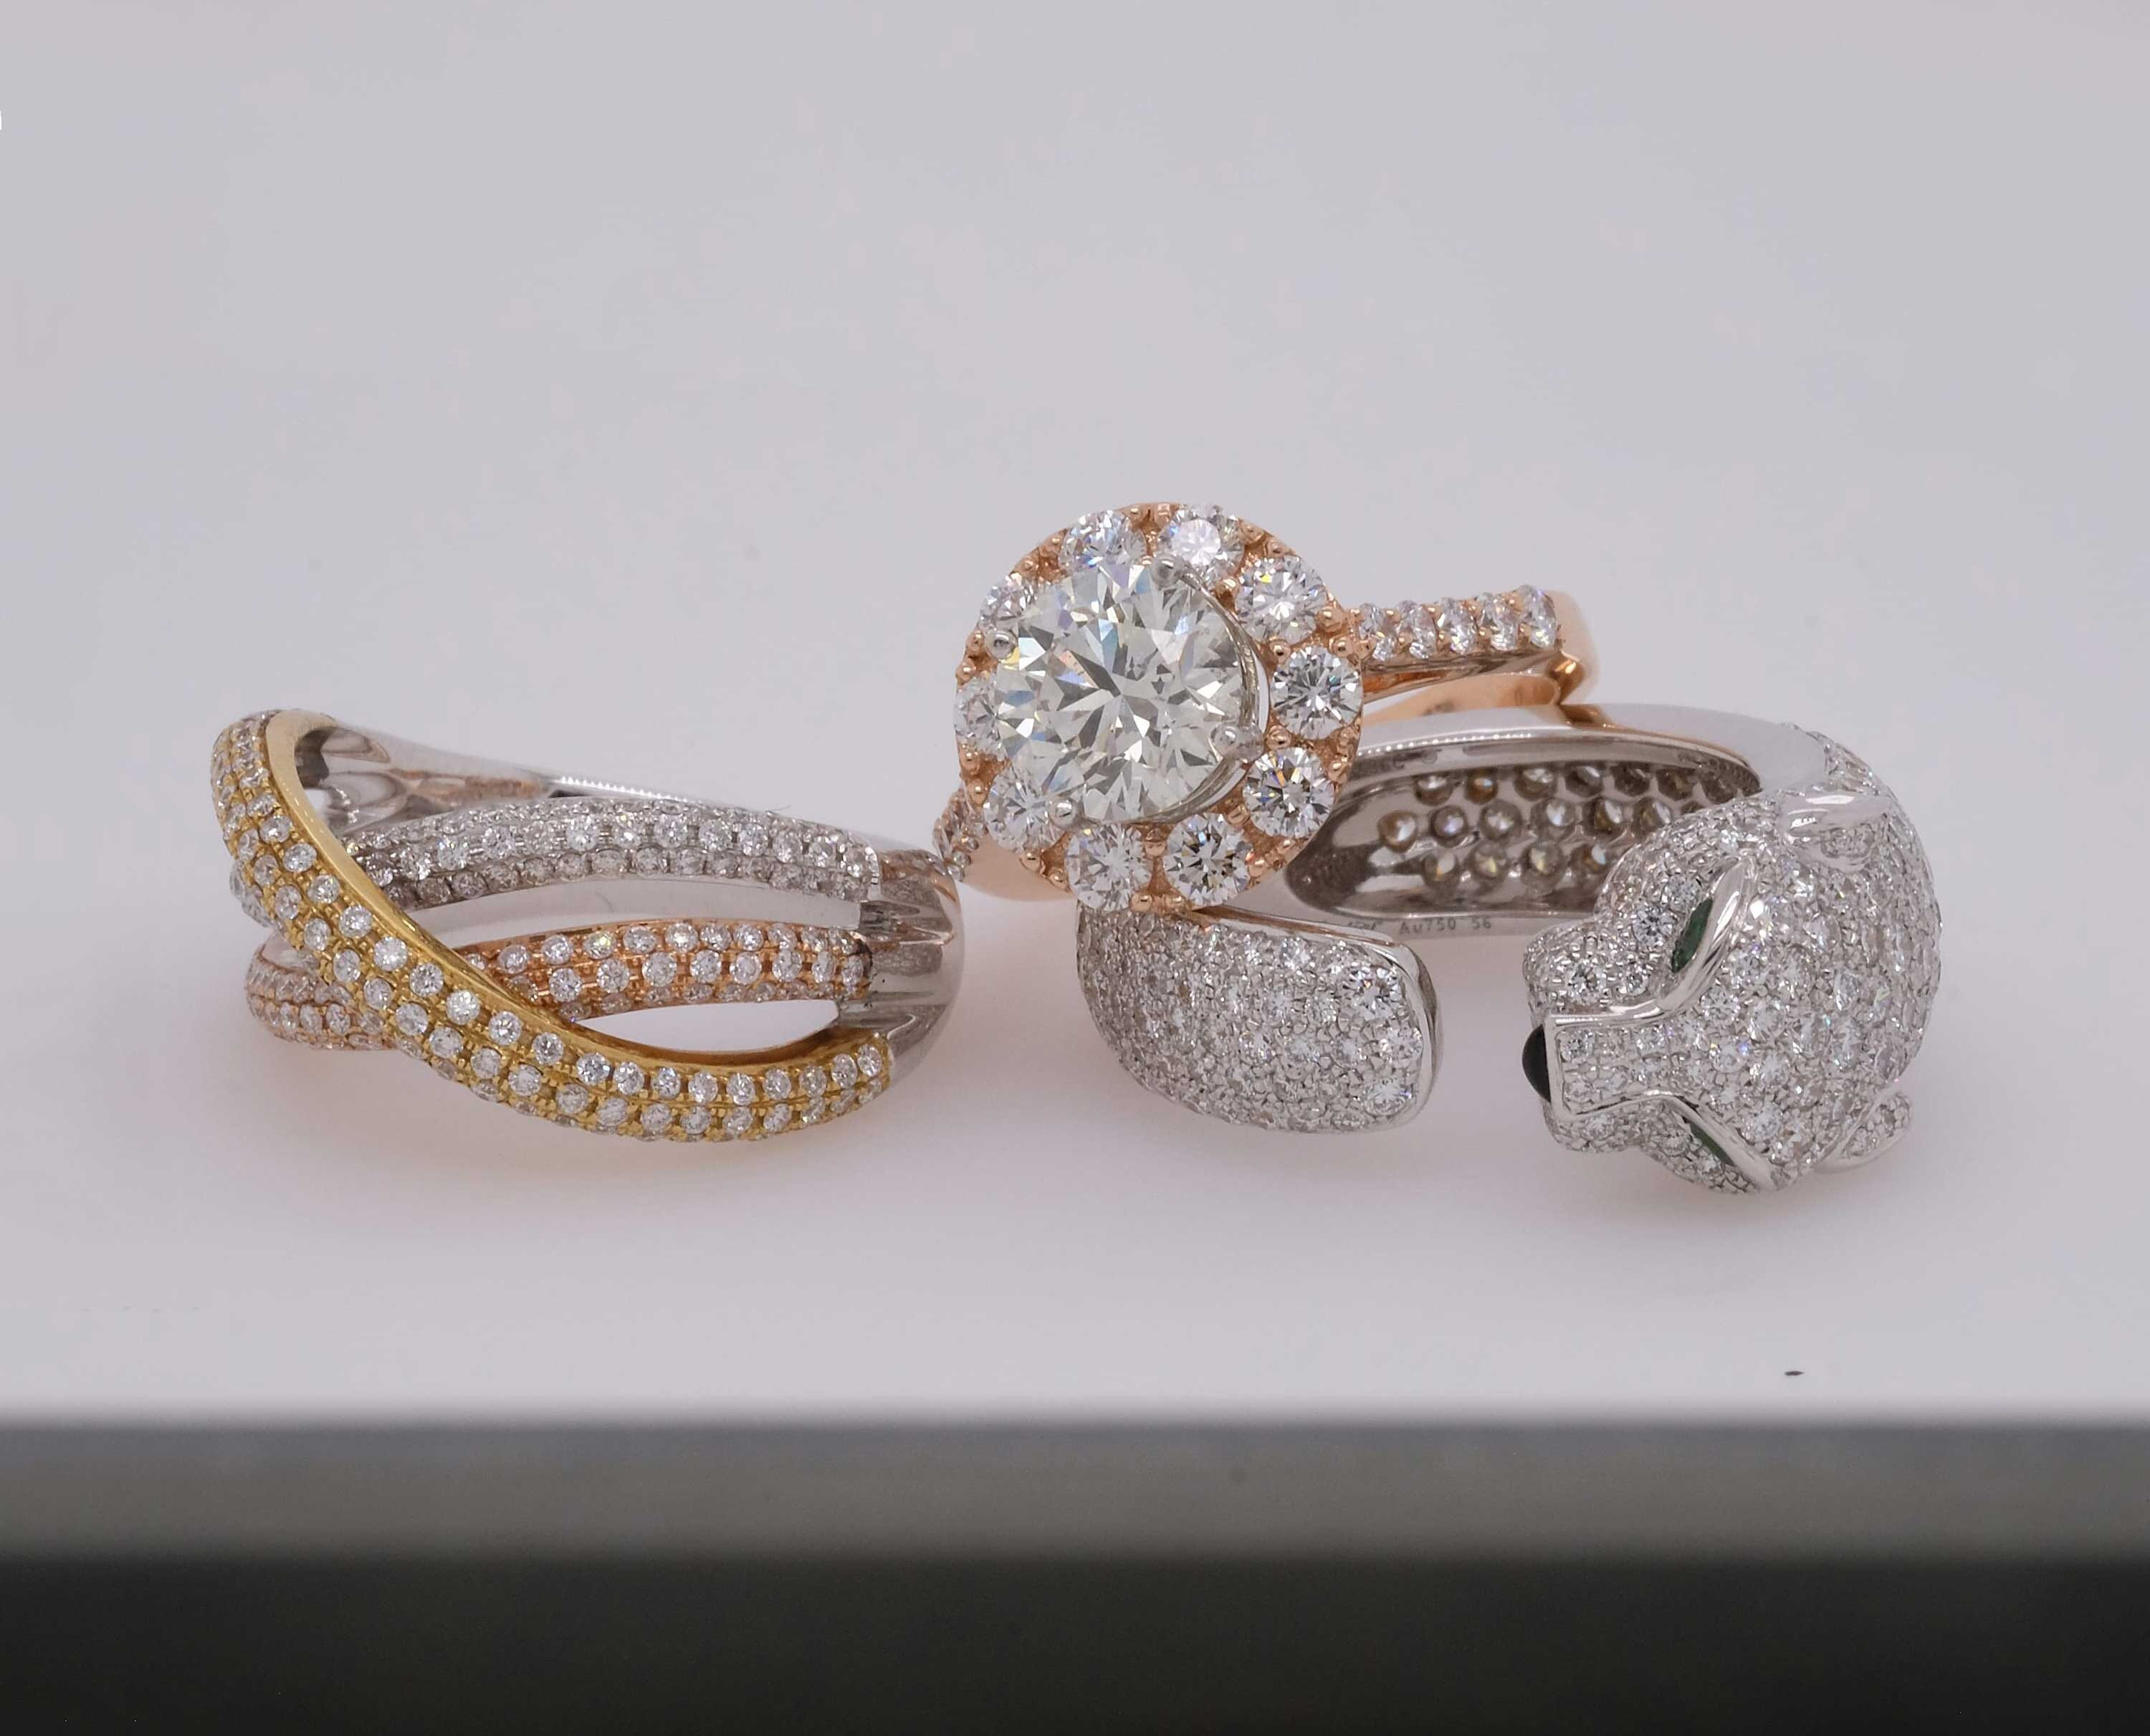 Jewelry photography - stack of rings